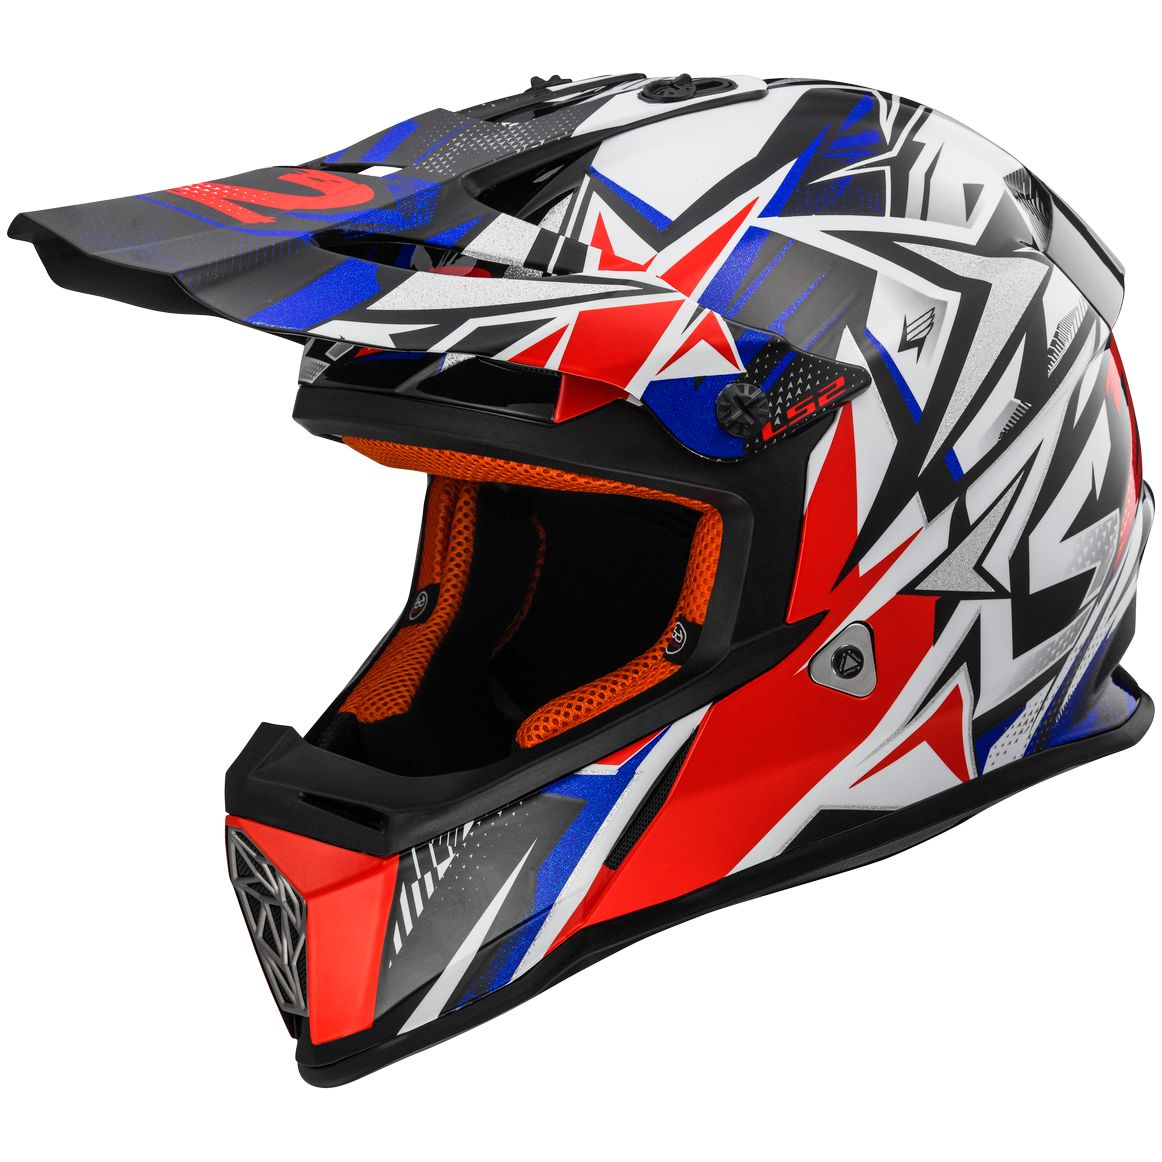 Casque cross LS2 MX437 - FAST MINI STRONG ENFANT